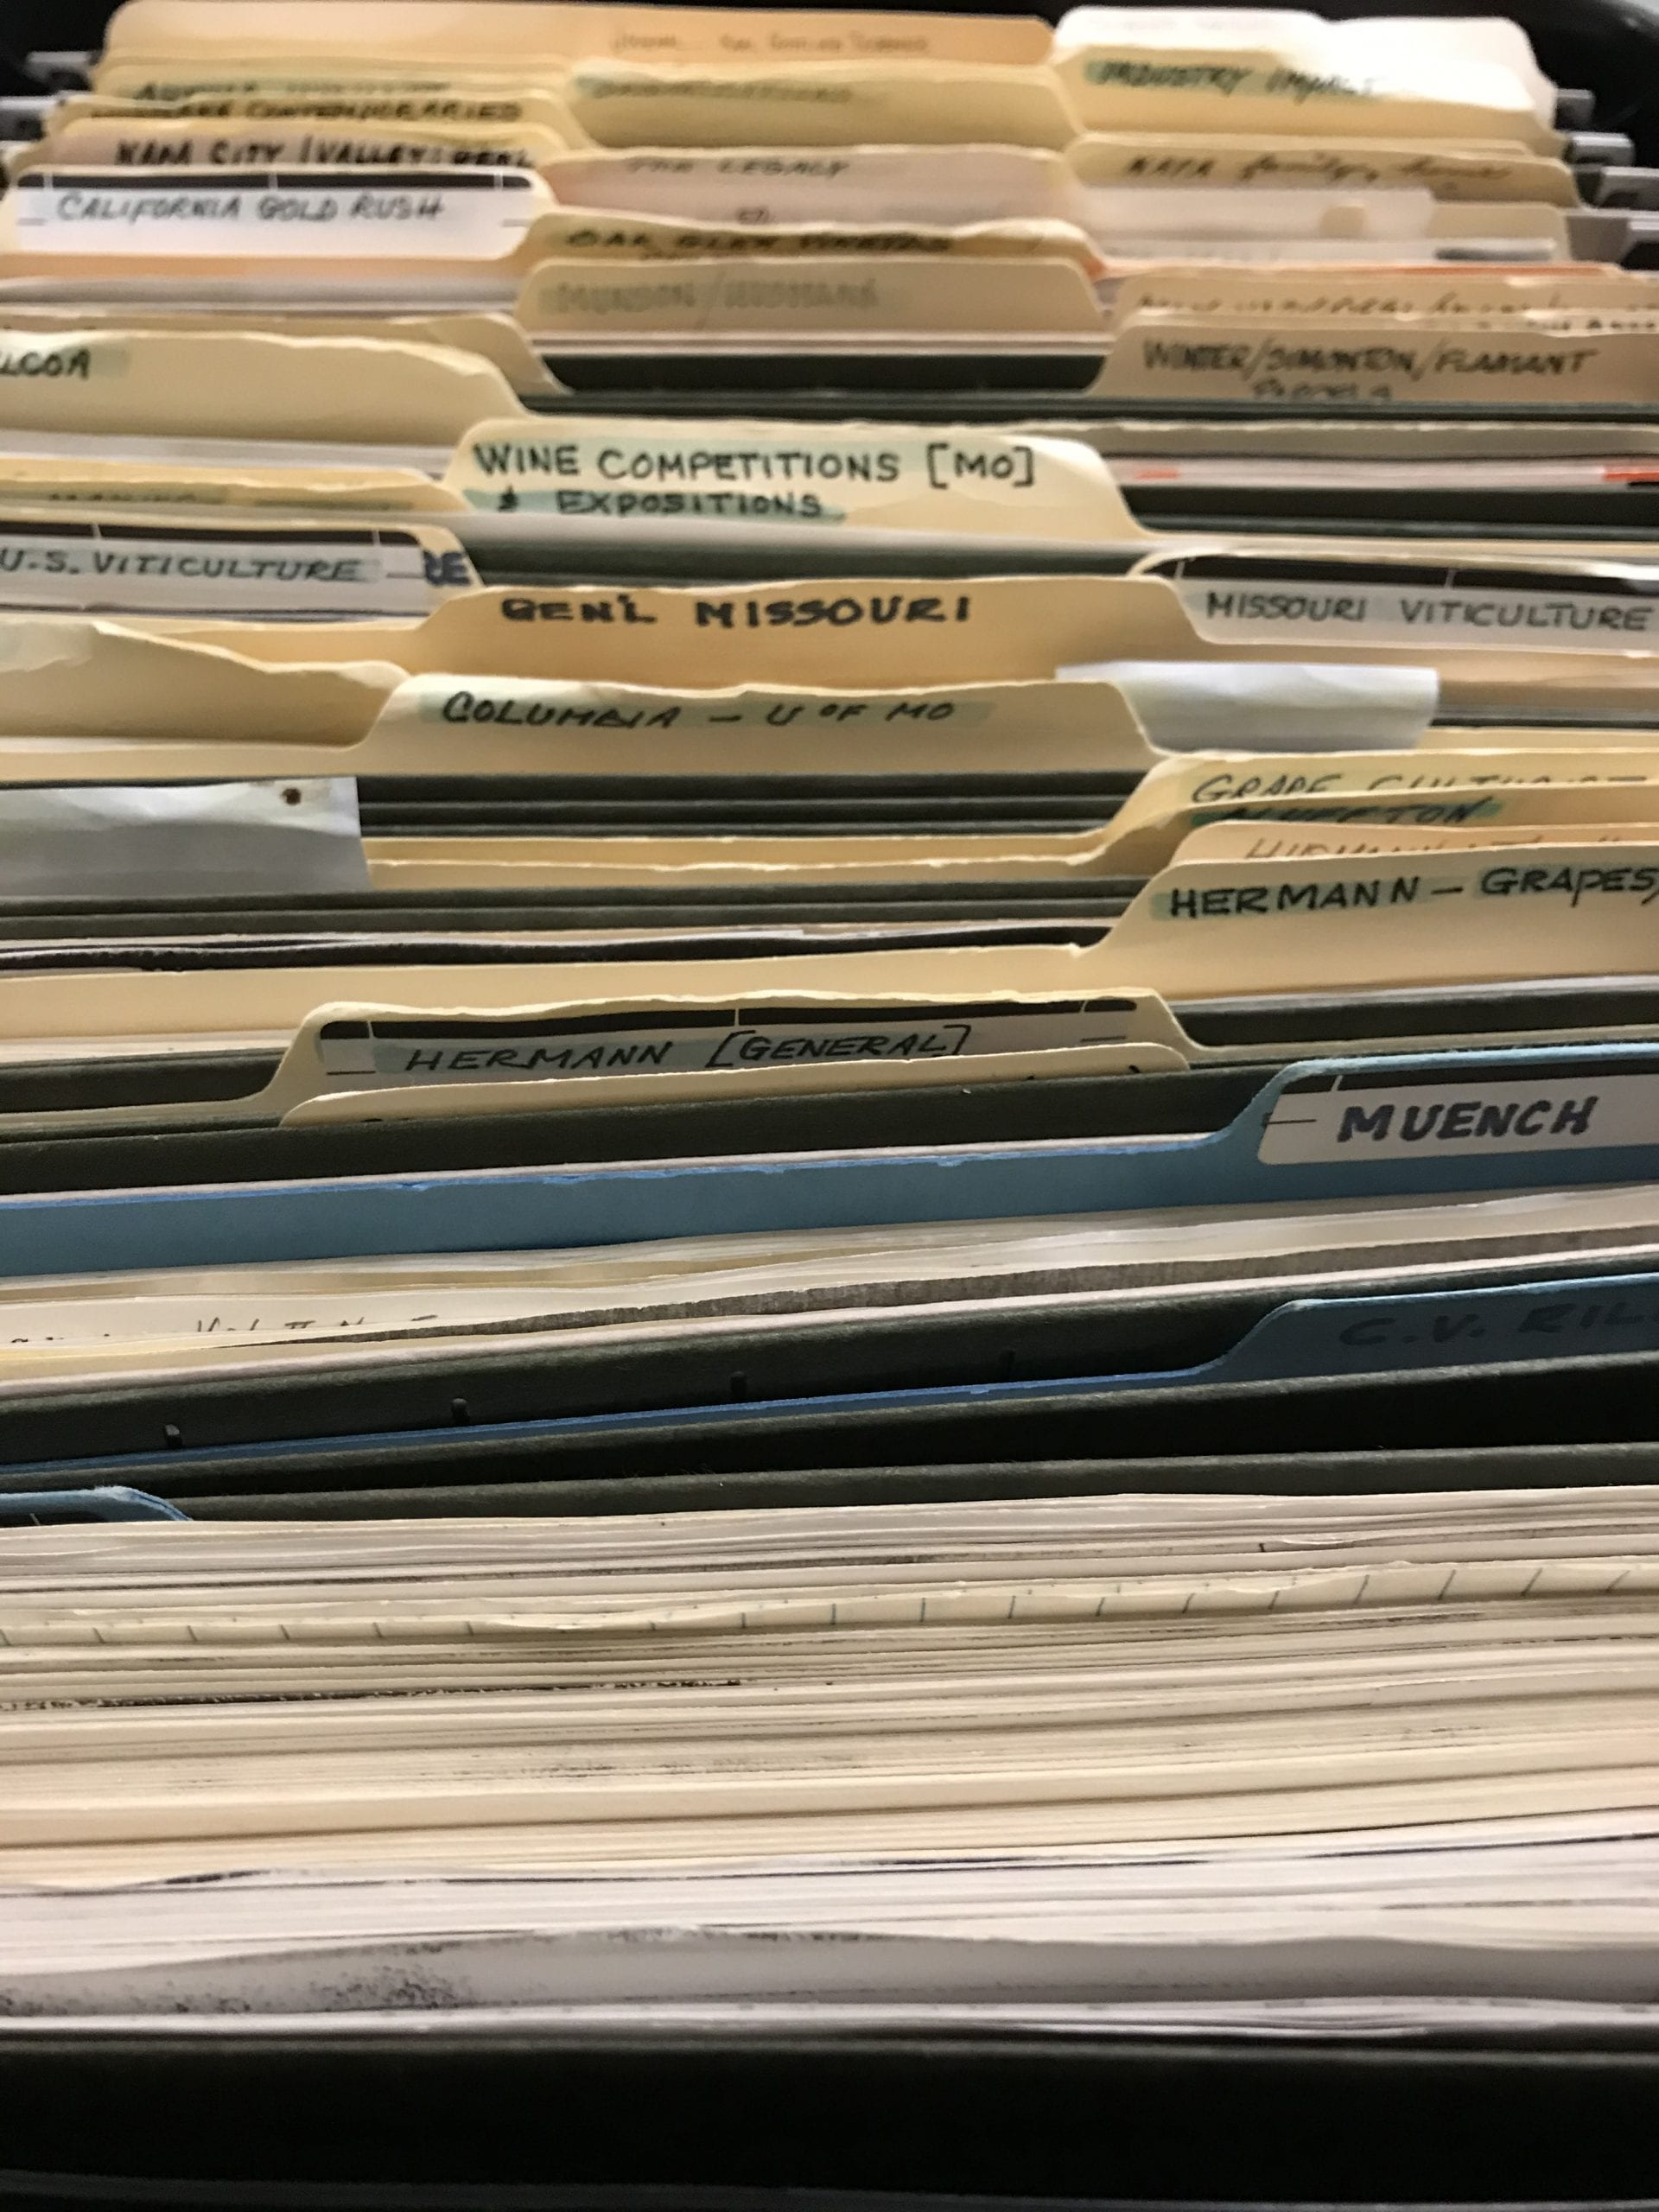 Box of files from Gail Unzelman papers